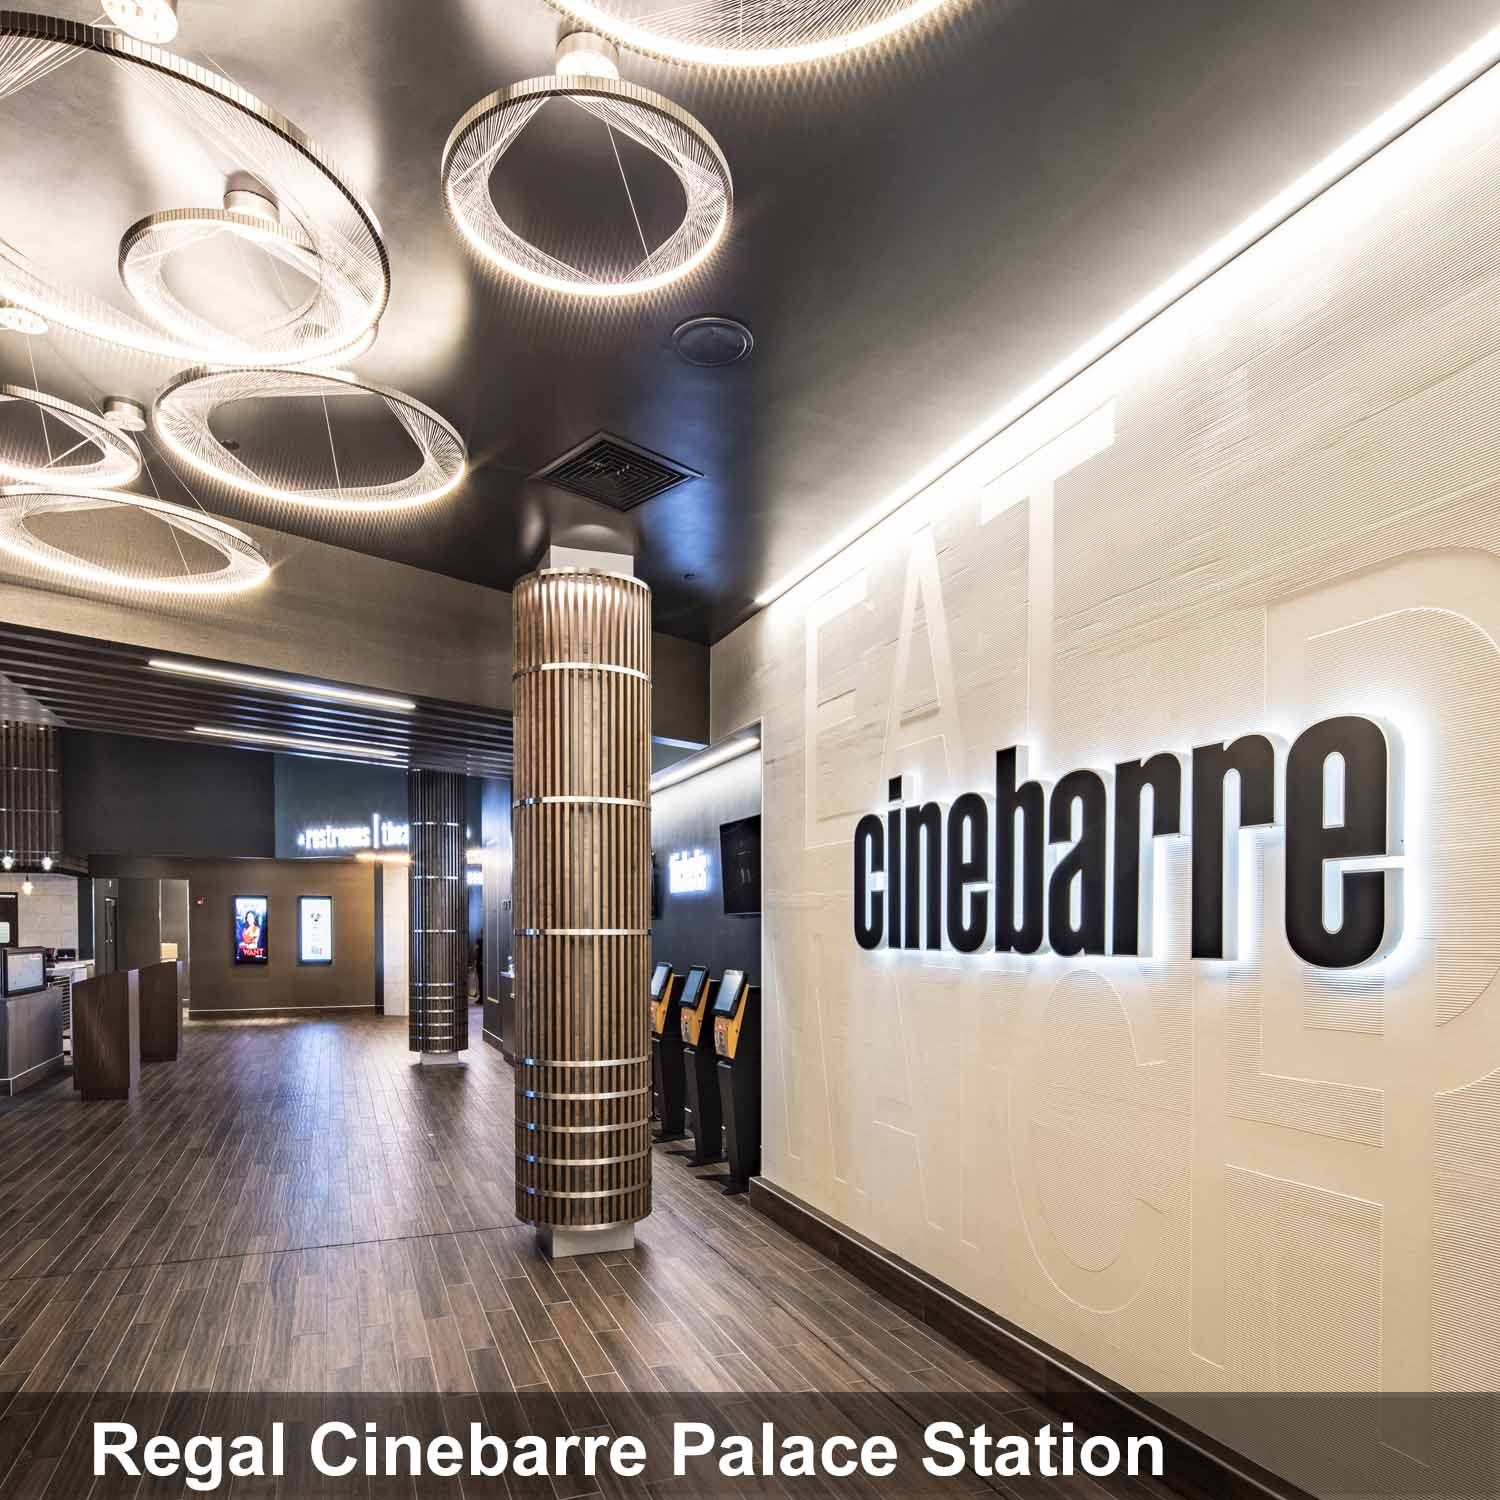 Regal Cinebarre Palace Station